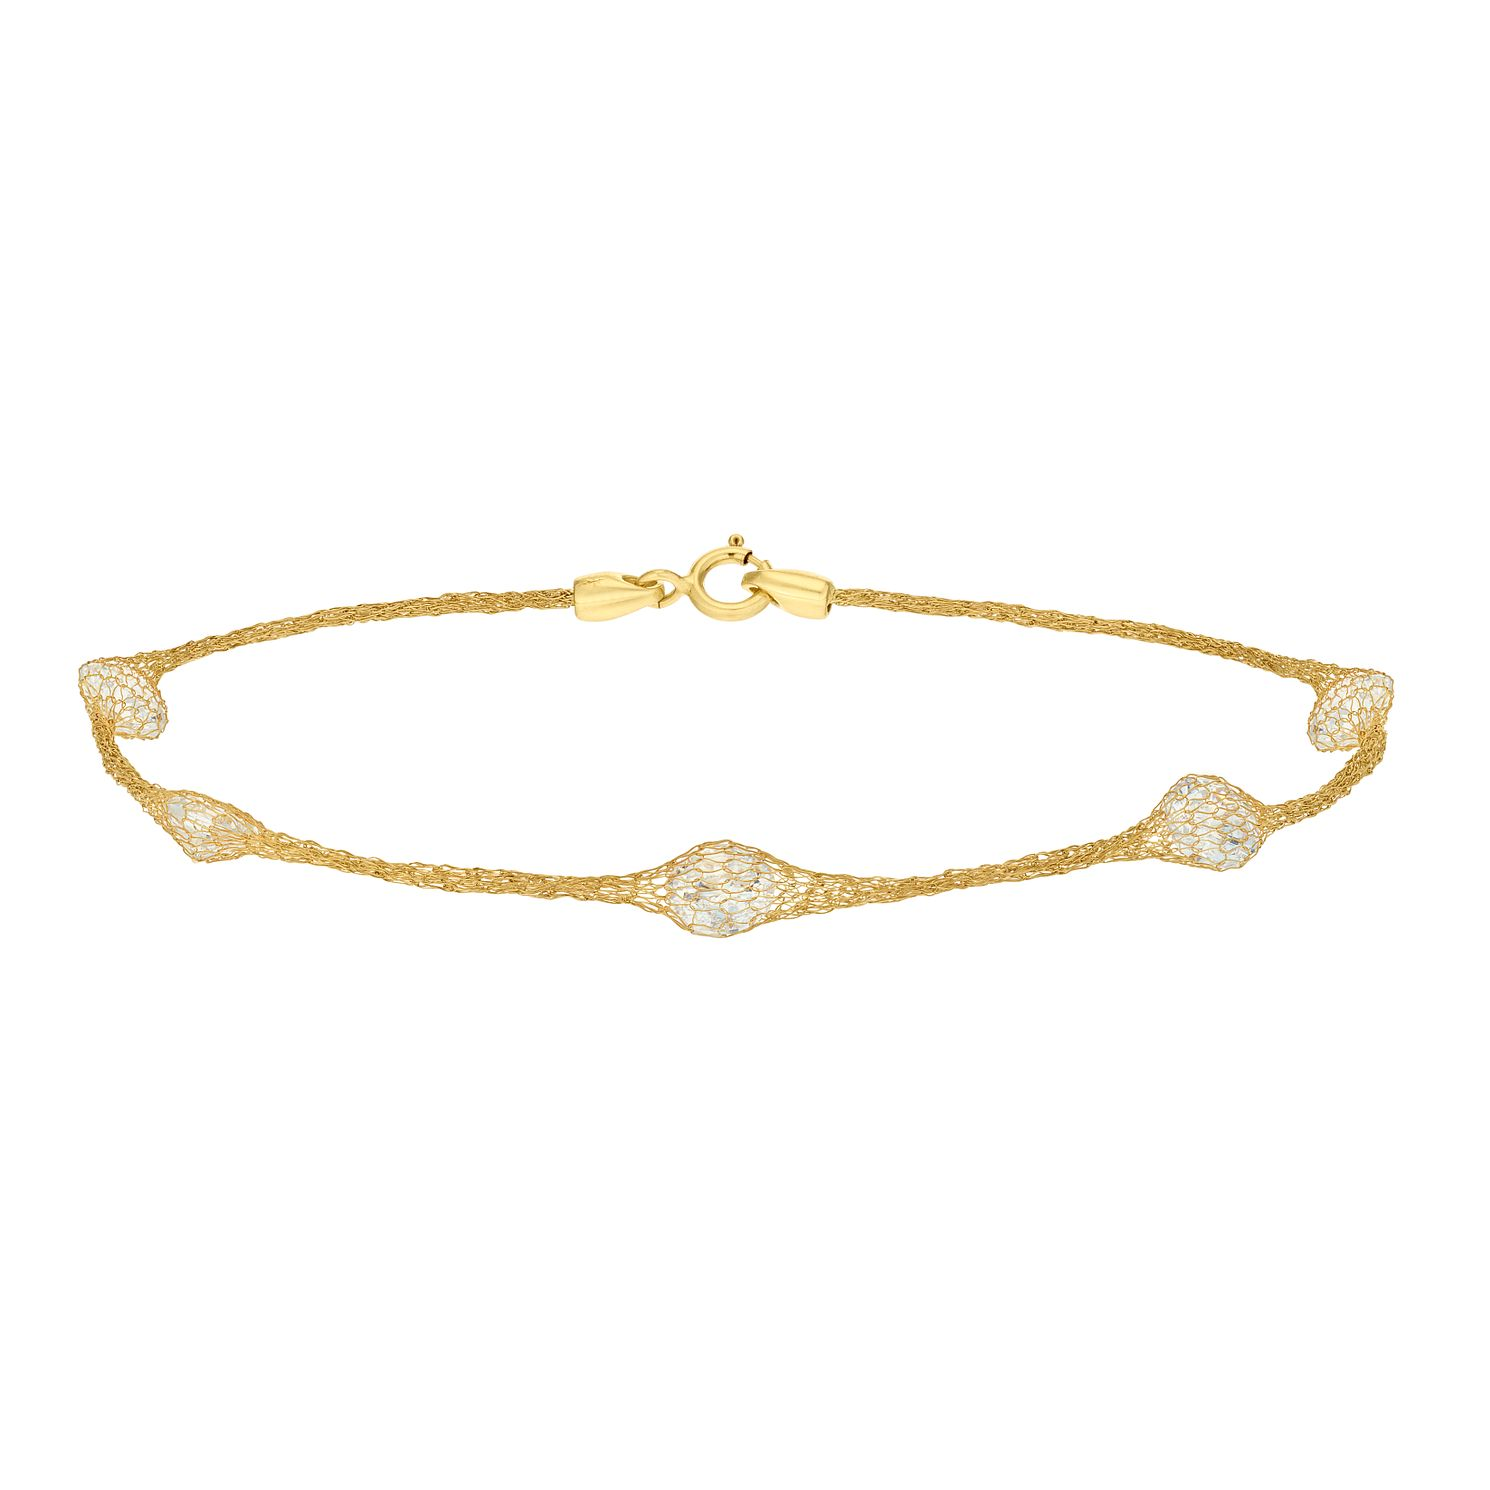 9ct Yellow Gold & White Cubic Zirconia Mesh Bracelet - Product number 9403388